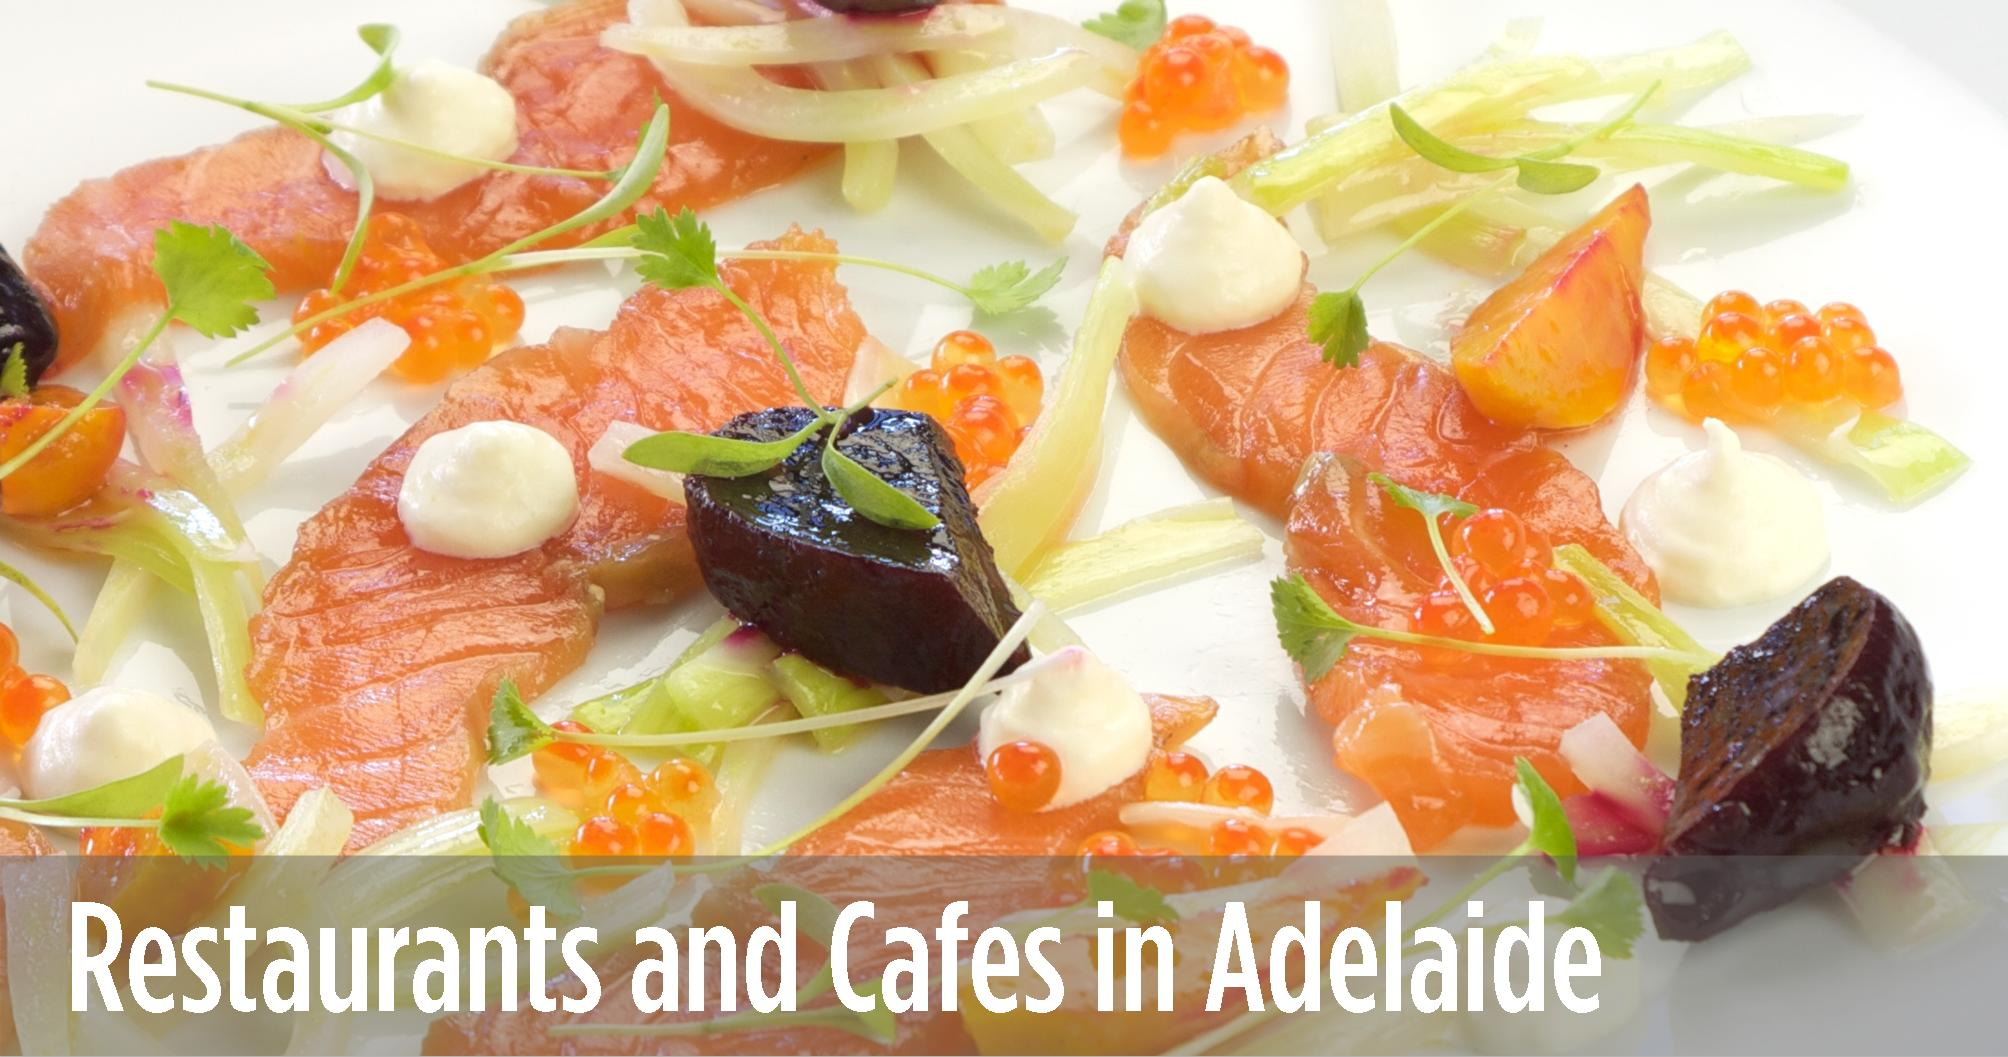 Adelaide Restaurant and Cafe Guide